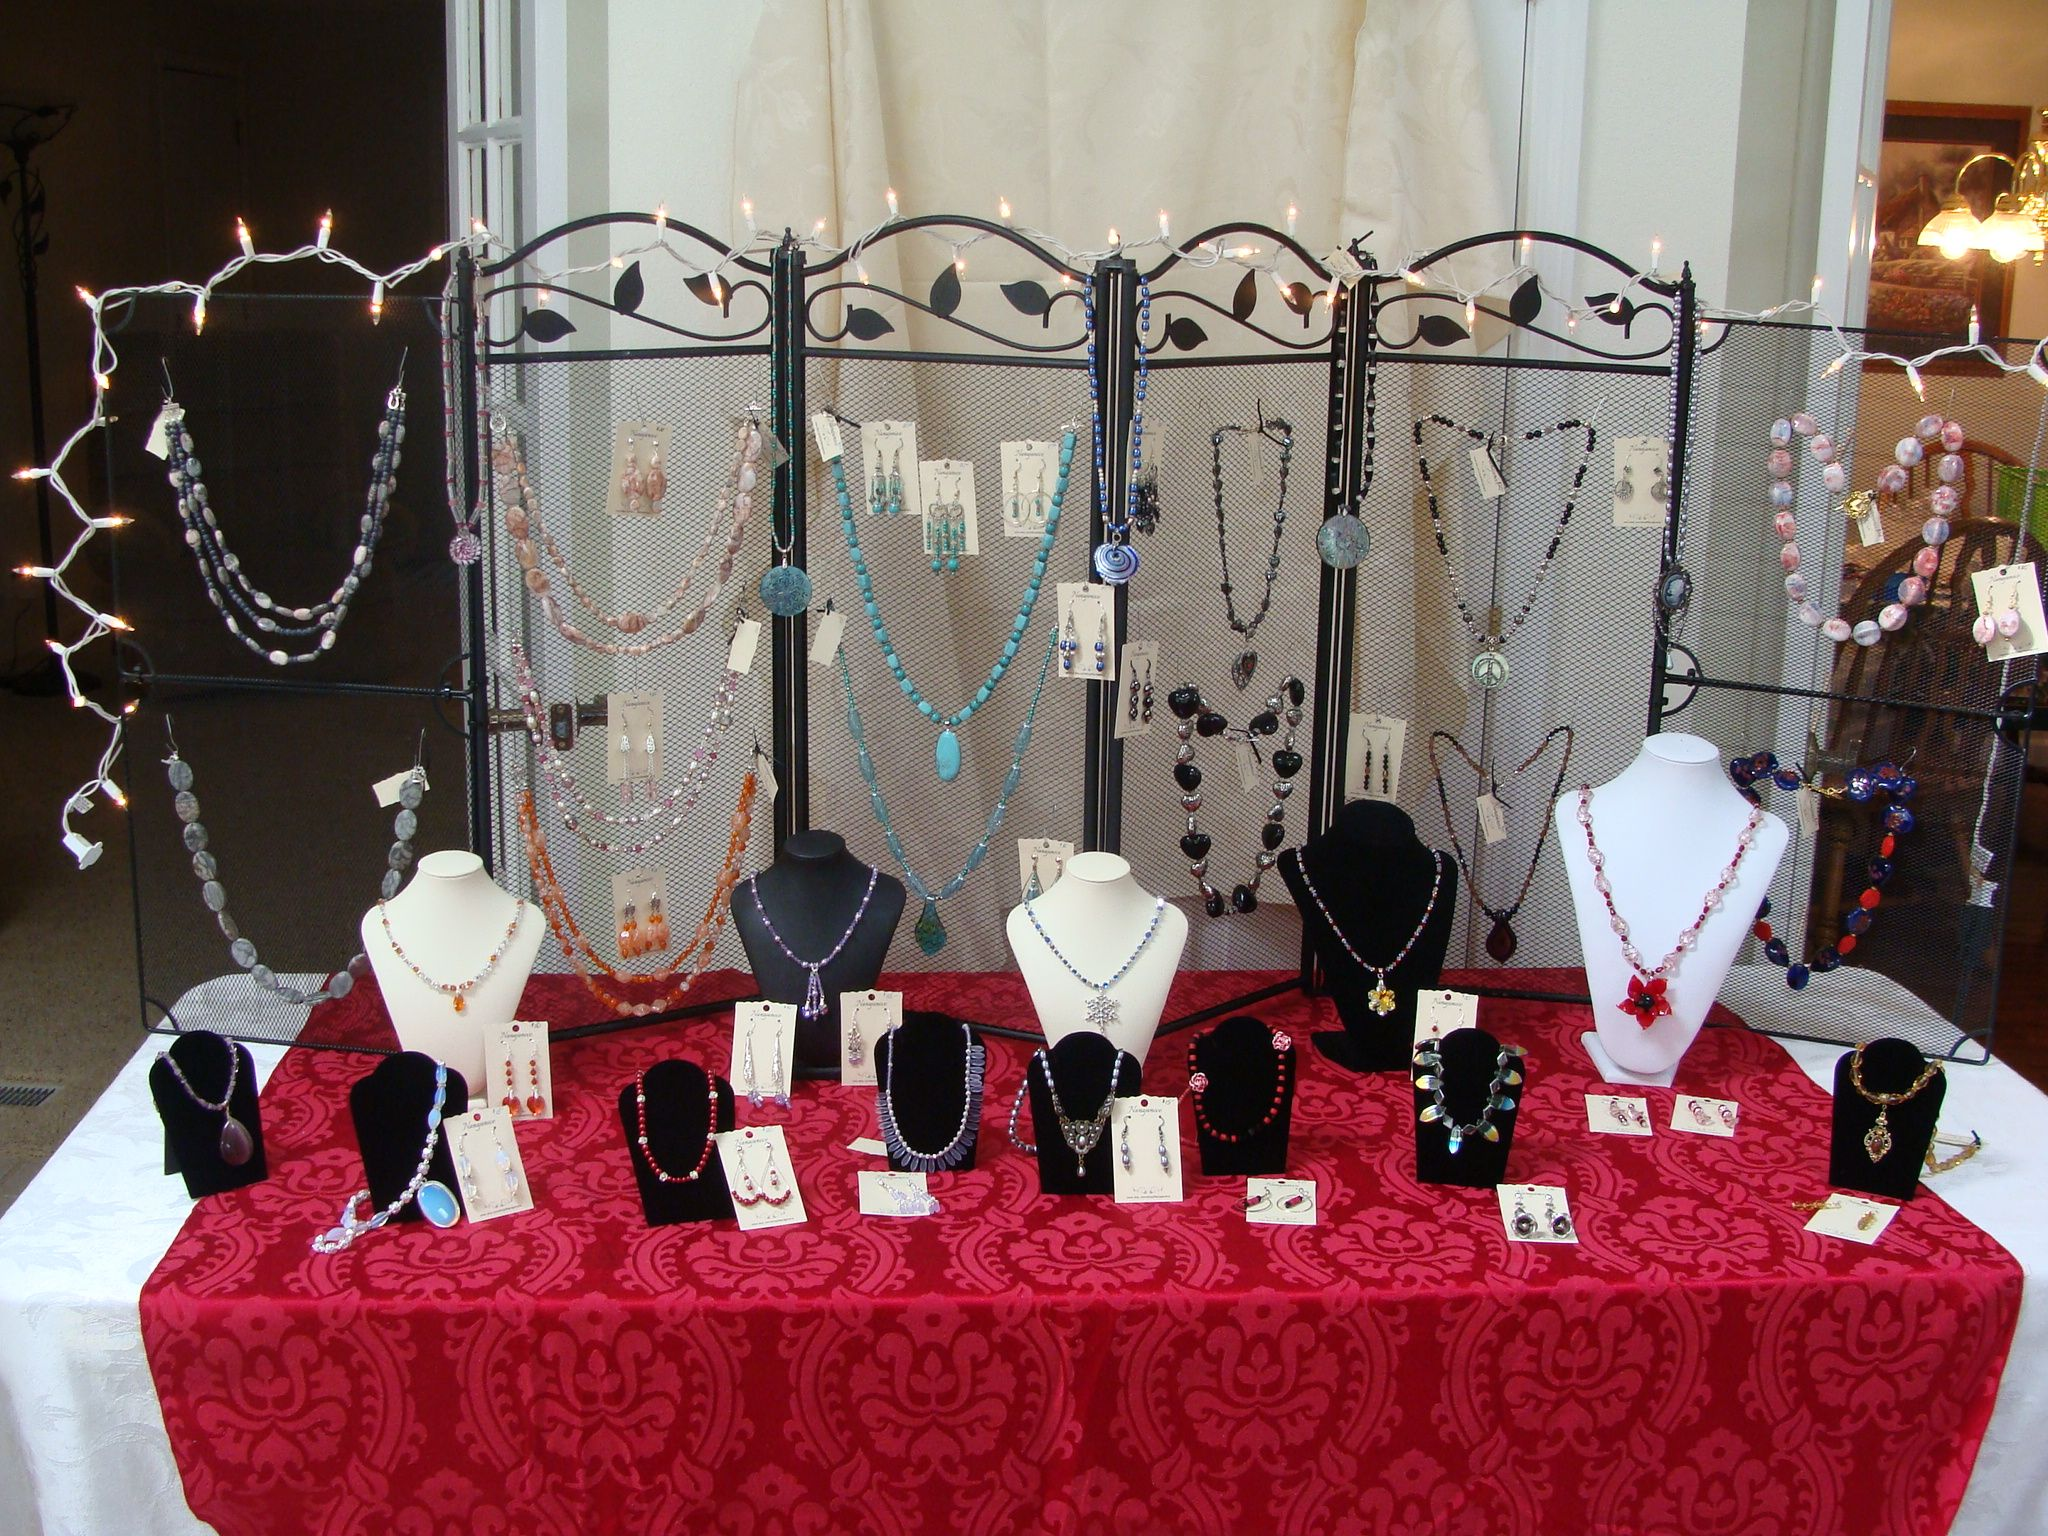 using a fireplace screen to hang necklaces or earrings to use as